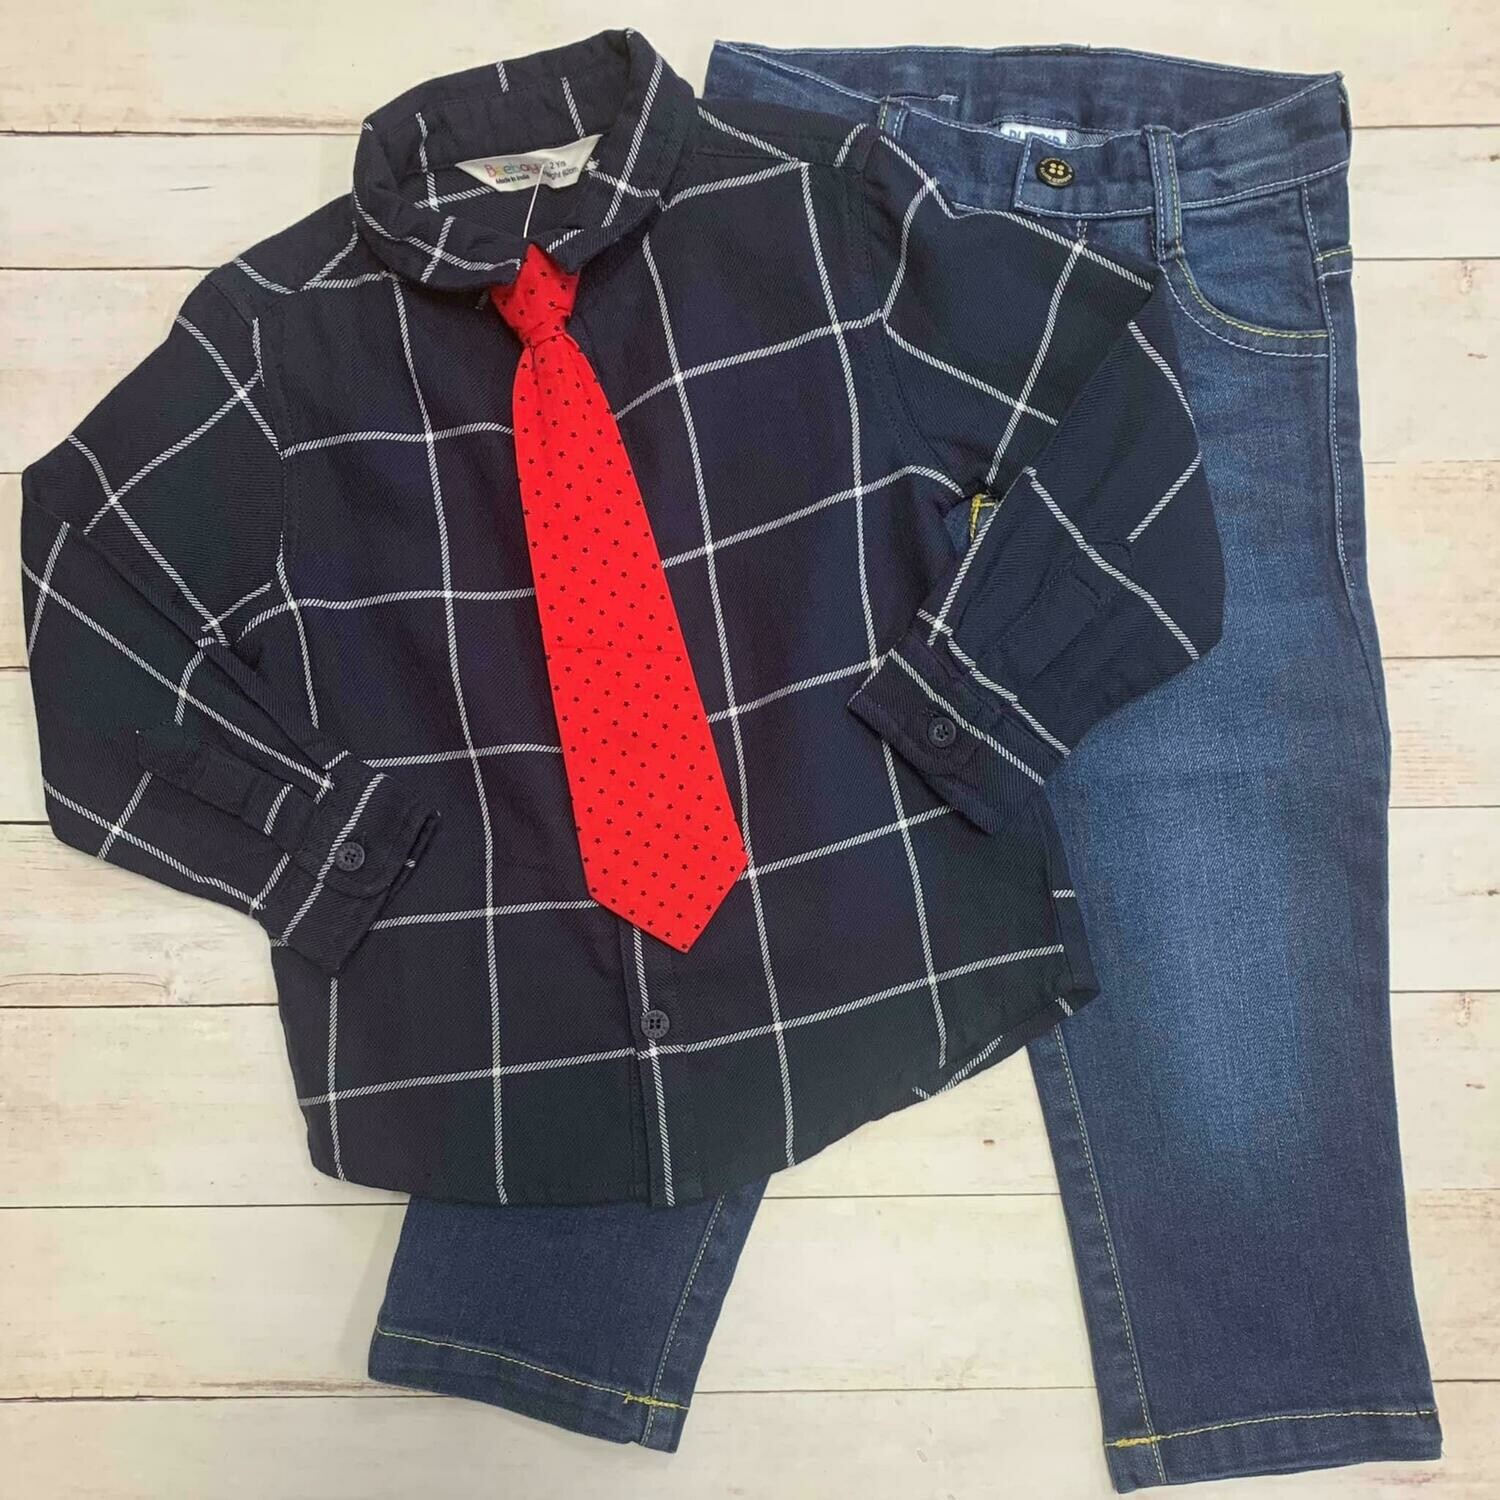 Navy Button Up with red Tie